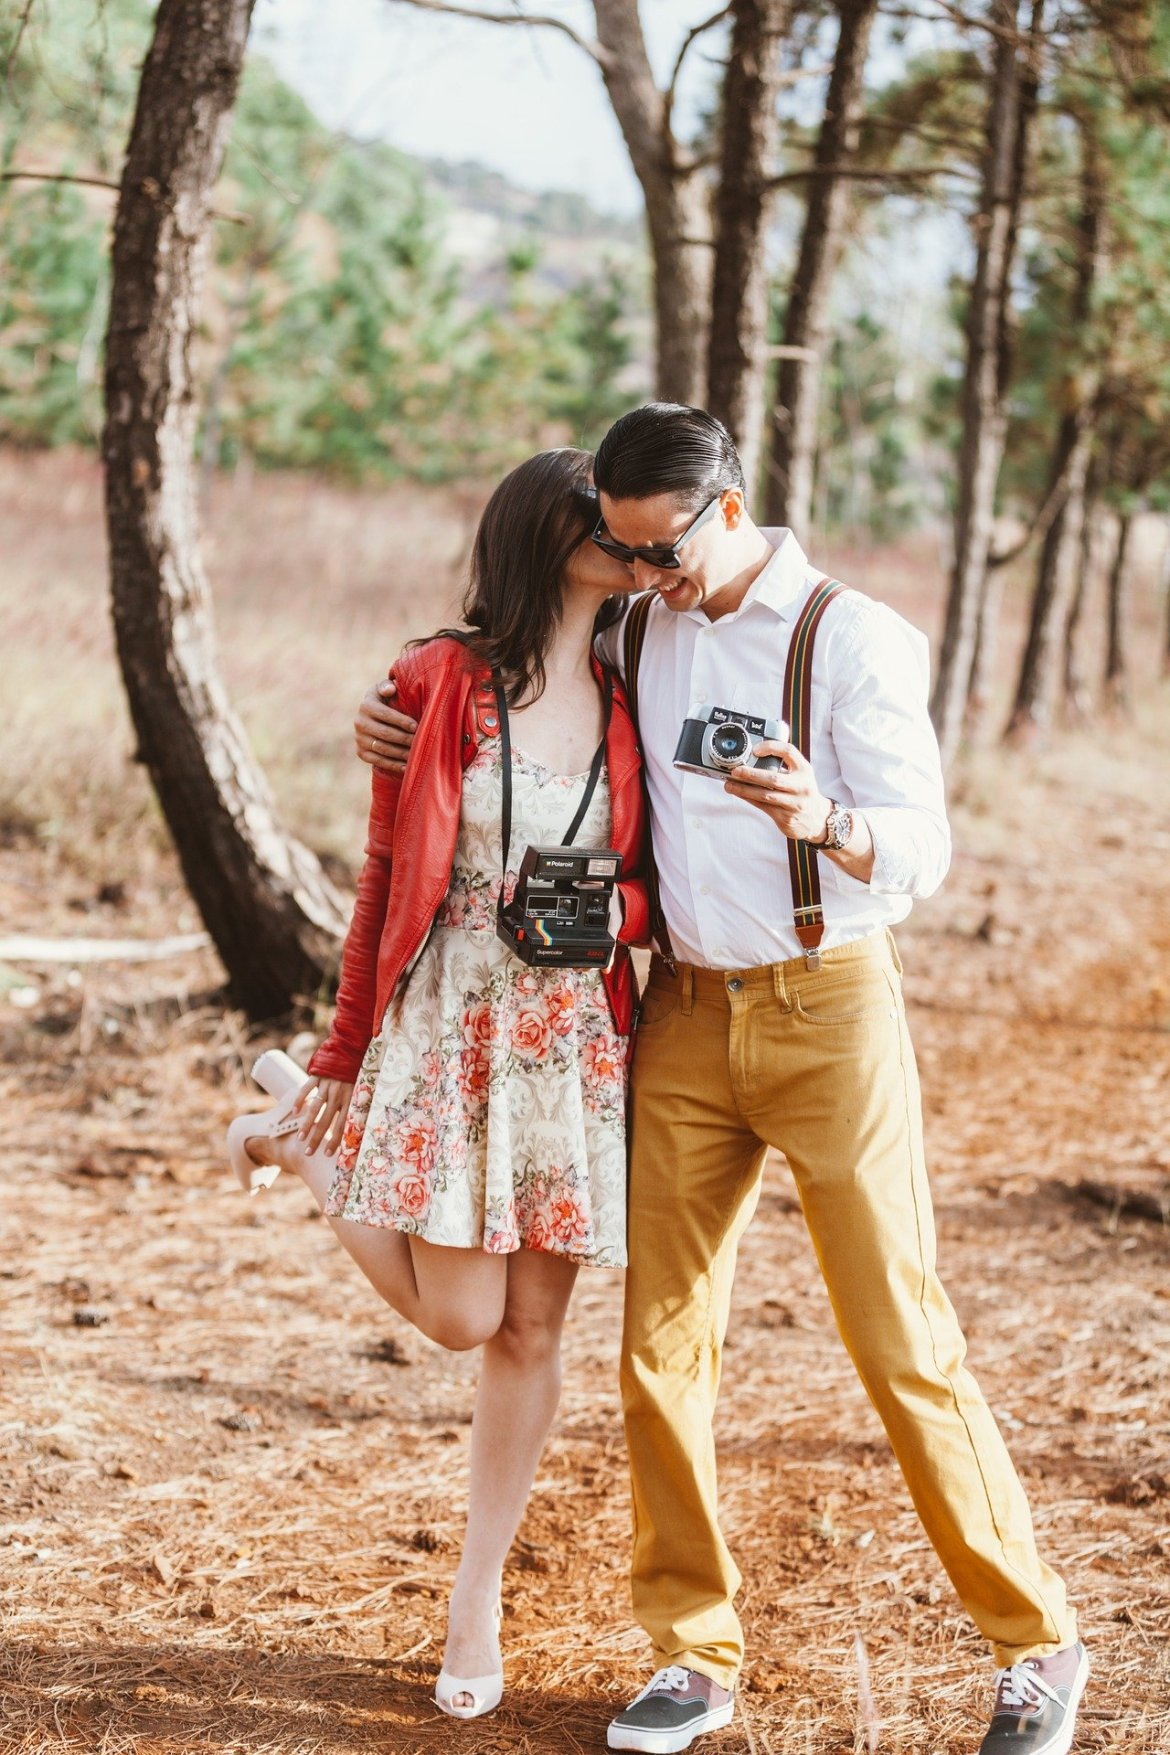 20 Signs He Is In Love With You